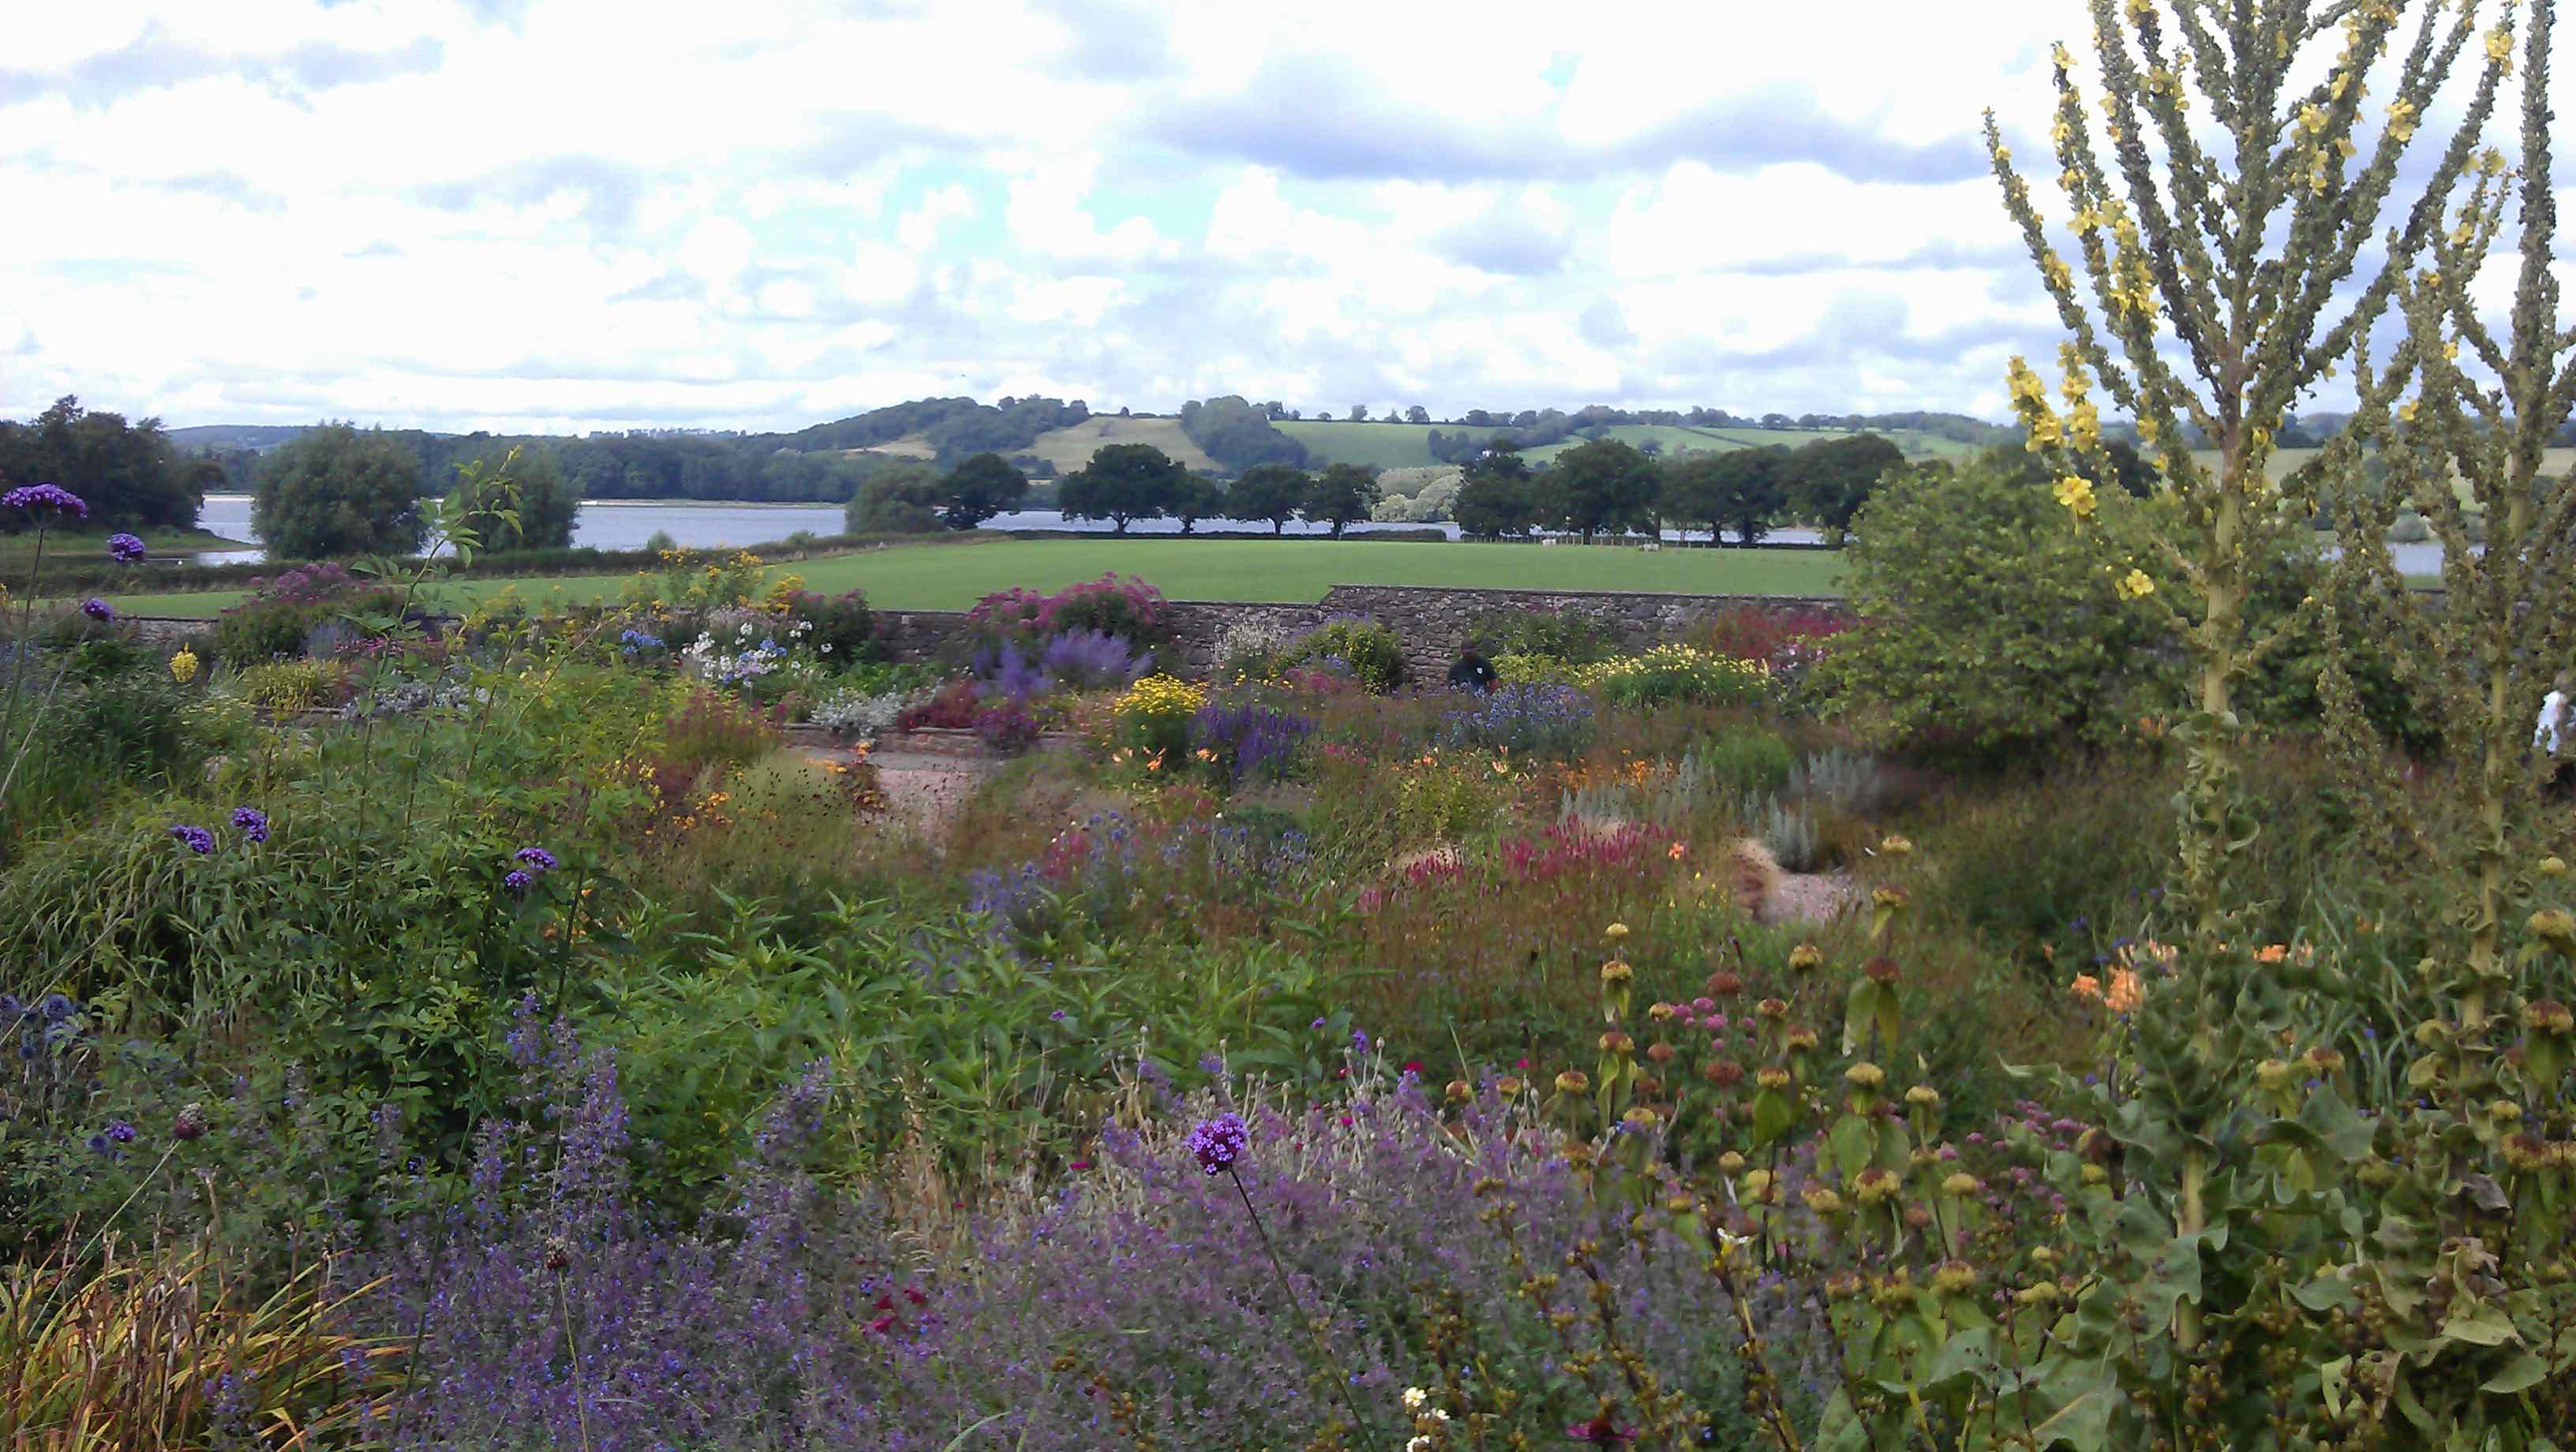 Yeo Valley garden and distant Blagdon lake